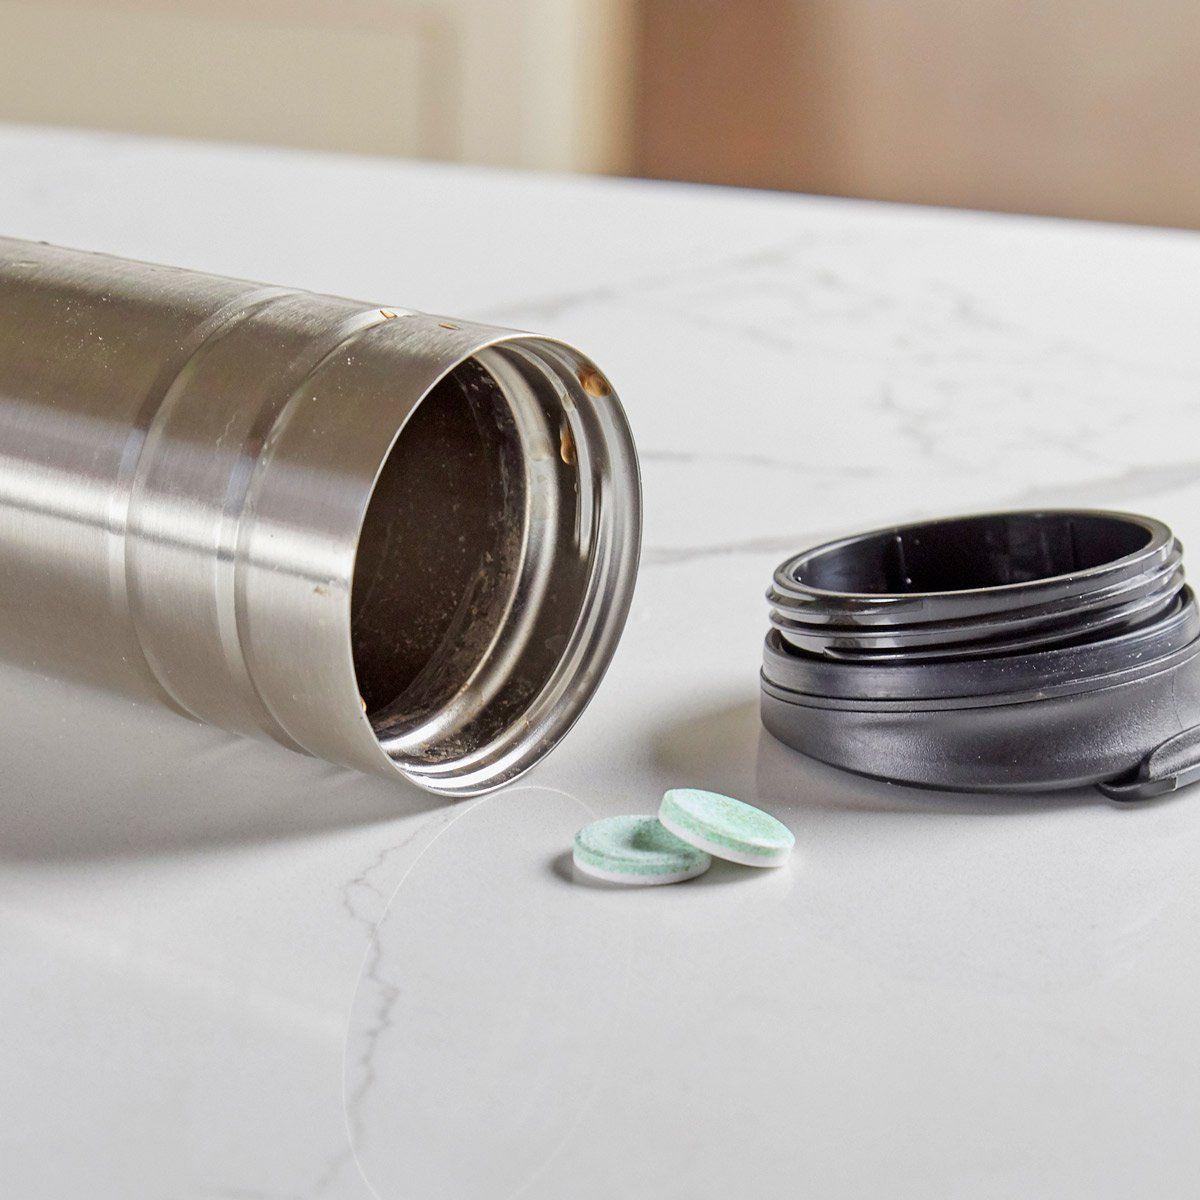 How to Easily Remove Tough Stains from a Coffee Thermos